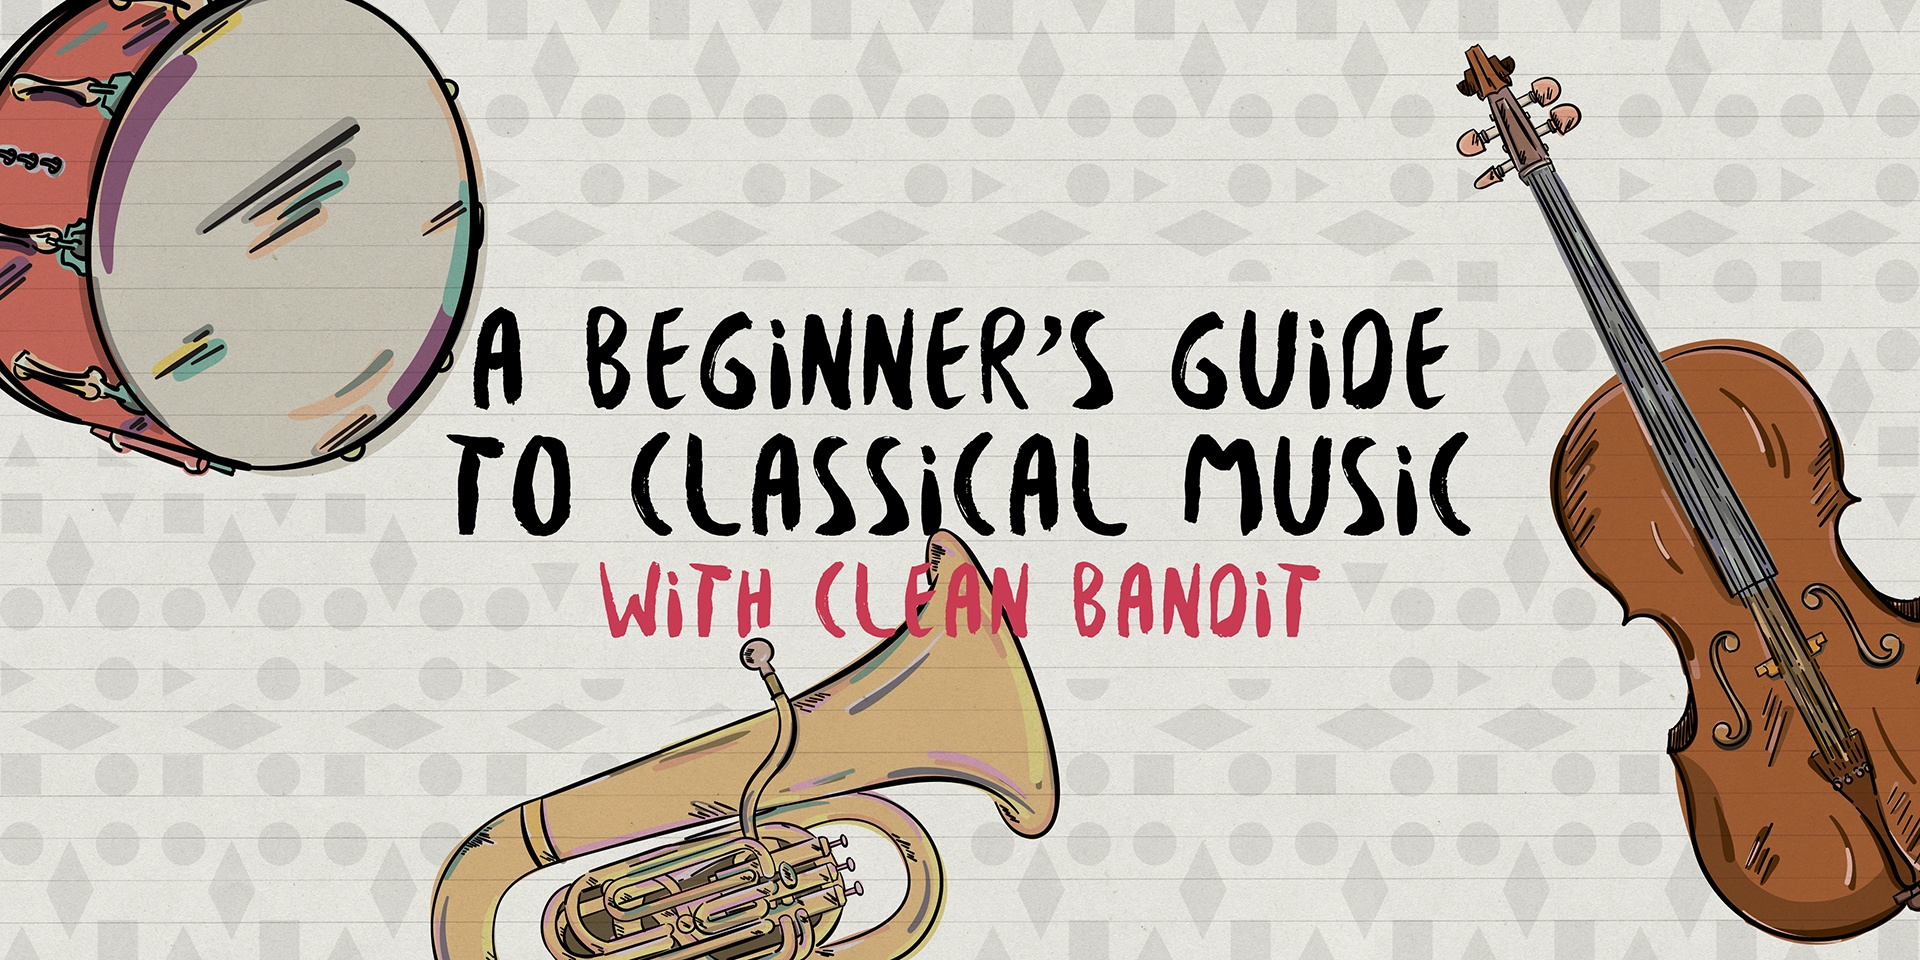 A Beginner's Guide to Classical Music with Clean Bandit